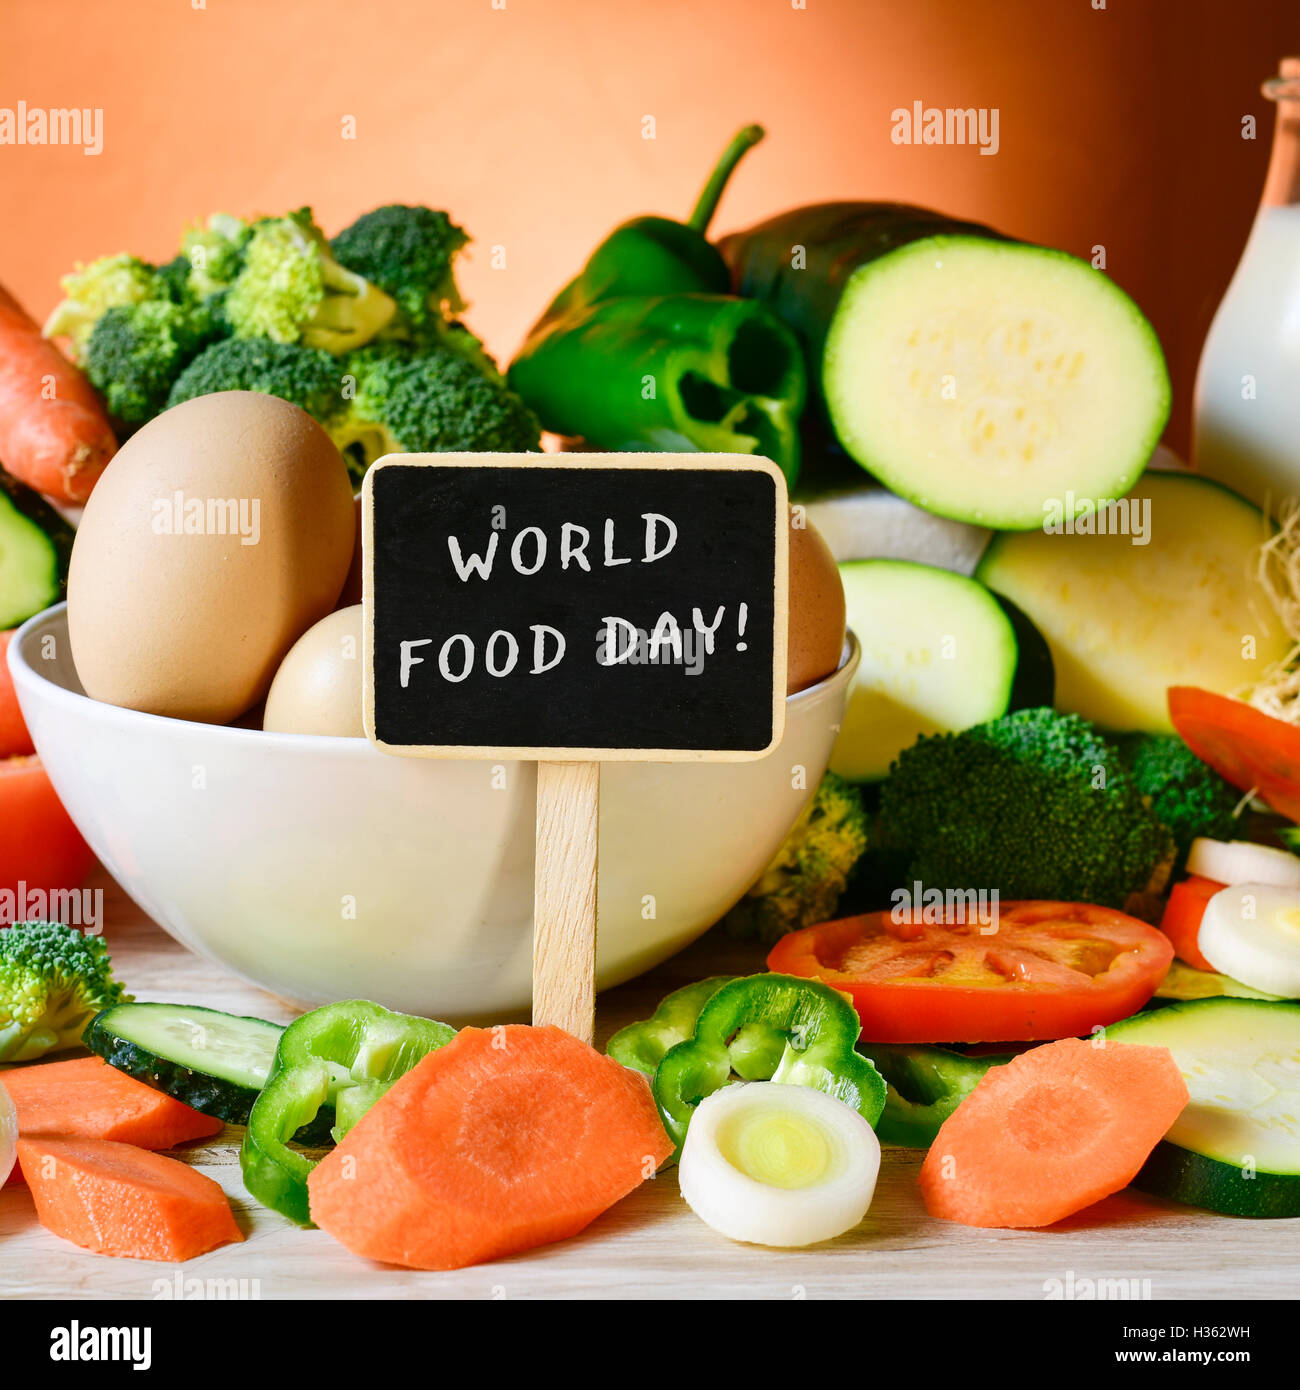 closeup of a chalkboard with the text world food day placed on a table fool of food, such as eggs, milk and pile - Stock Image